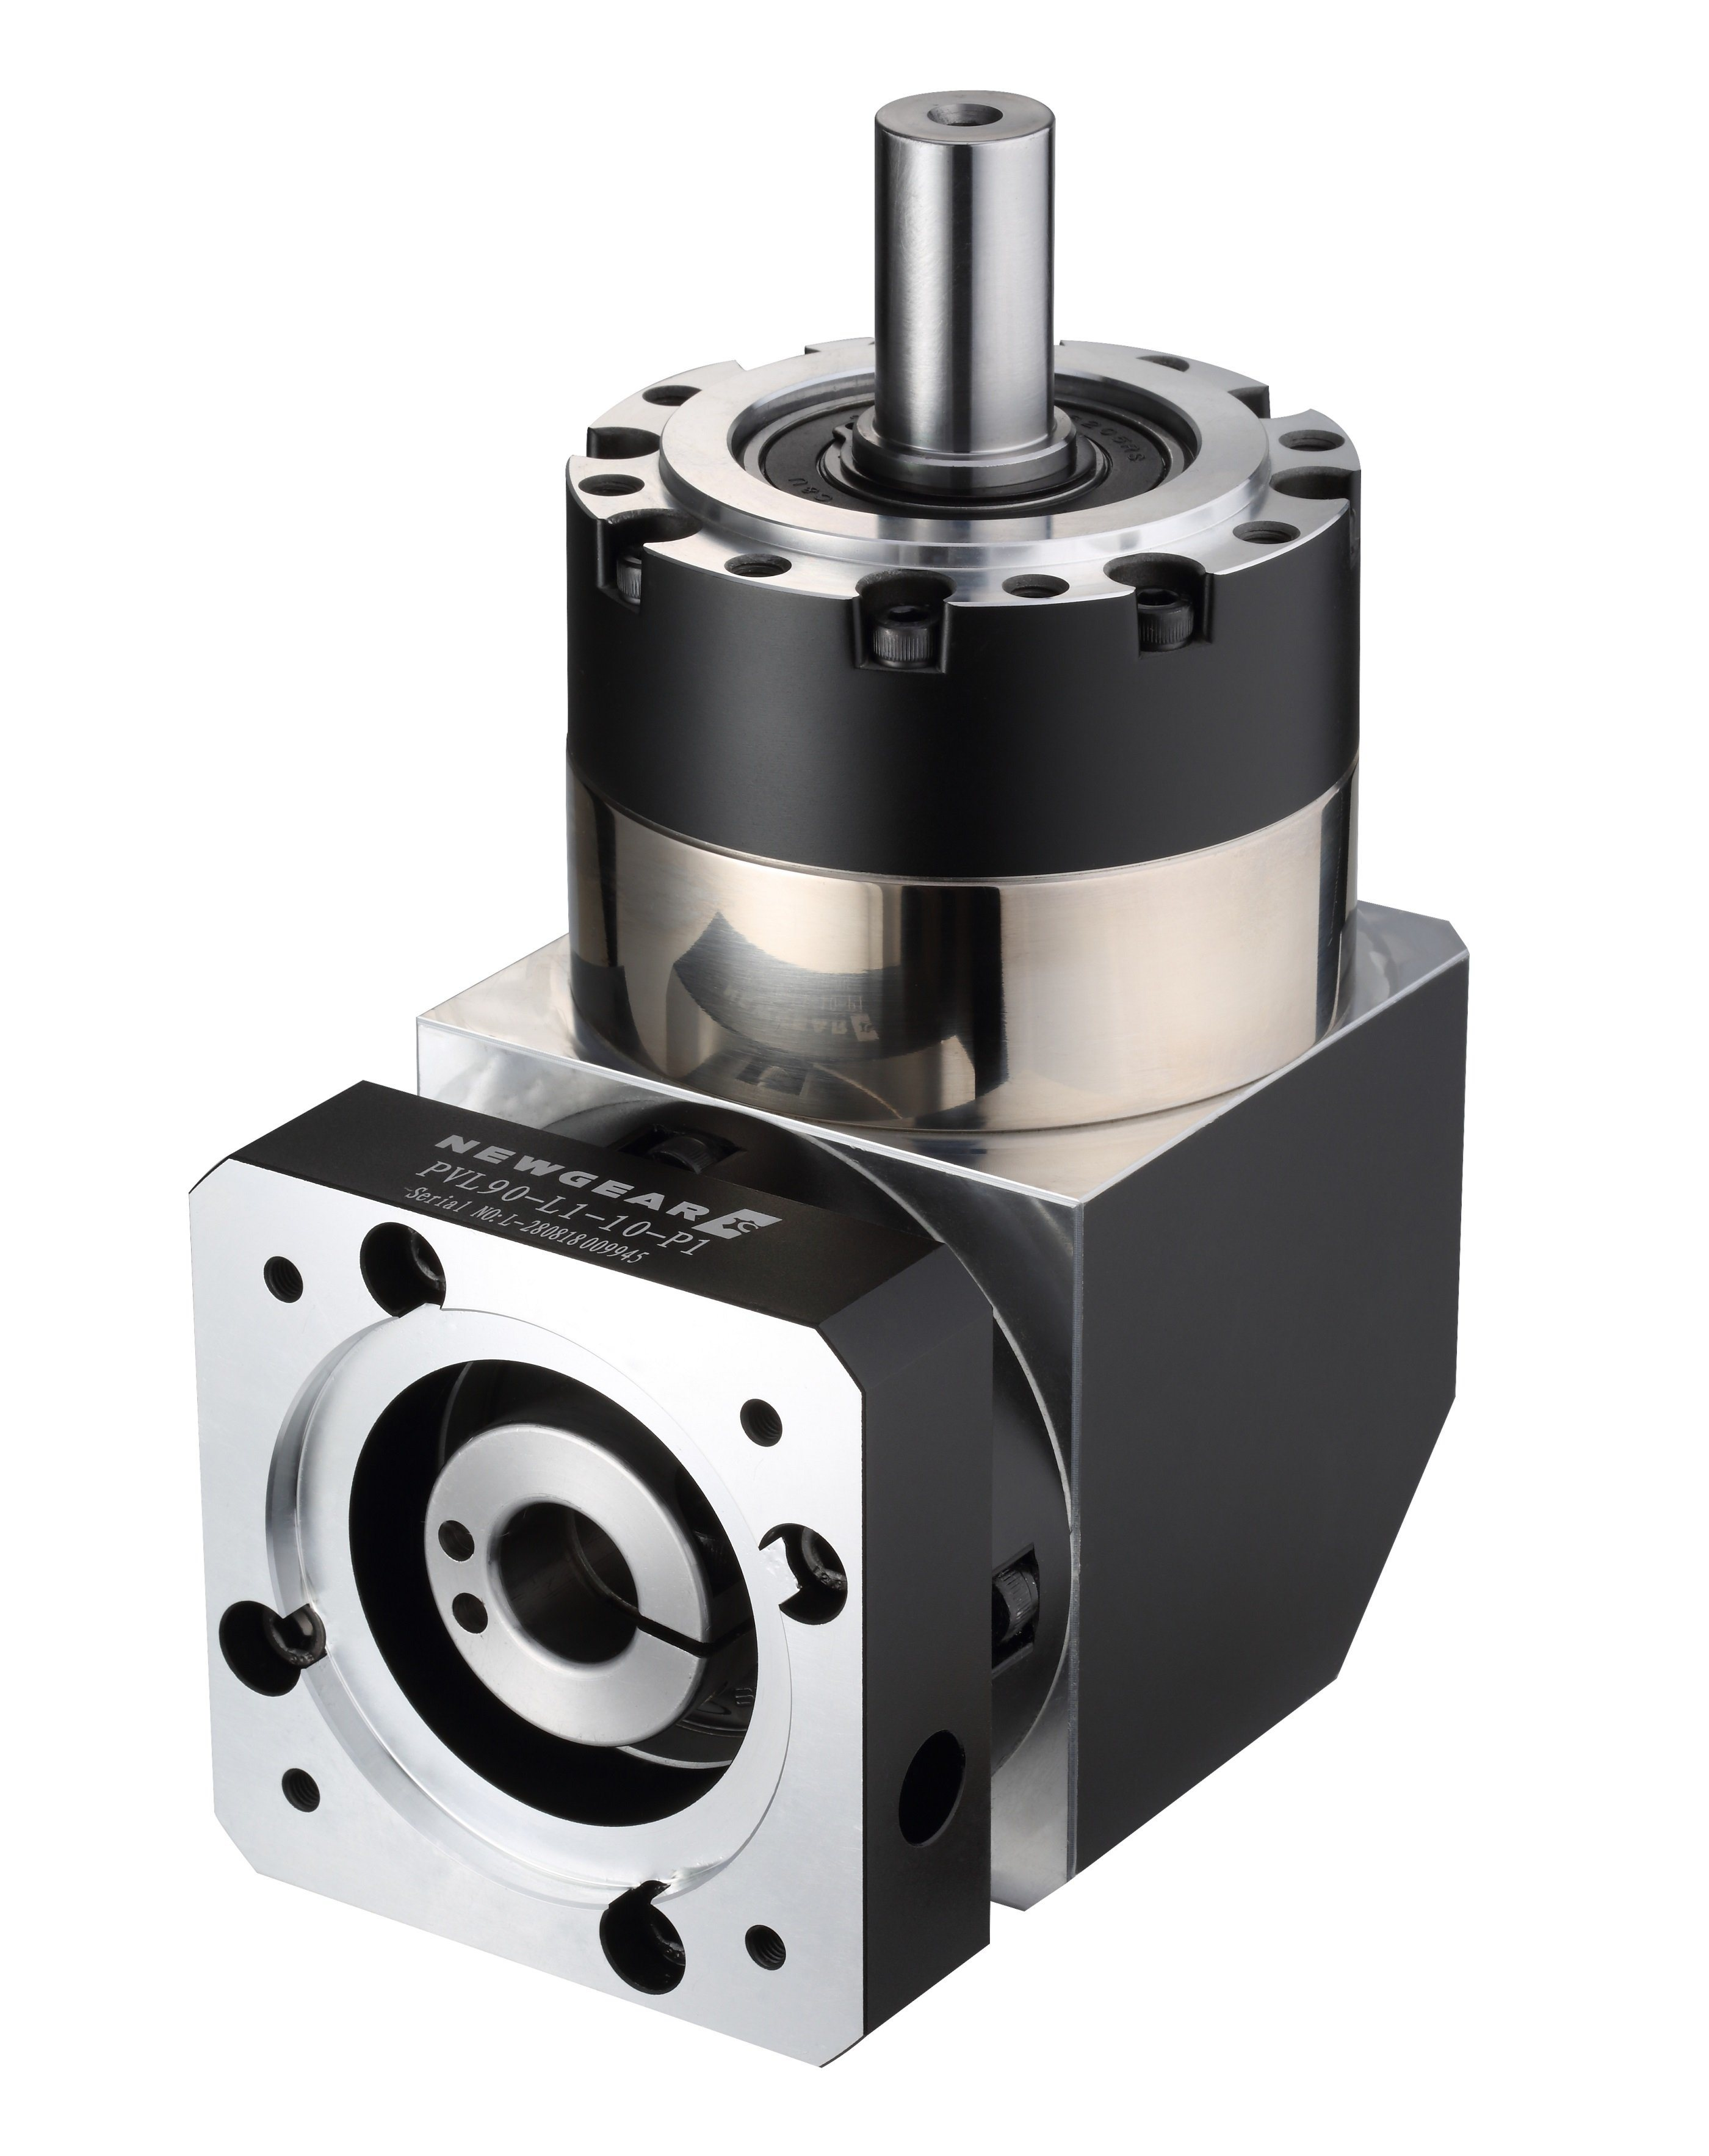 China Right Angle Gearbox, Right Angle Gearbox Manufacturers, Suppliers,  Price   Made-in-China com